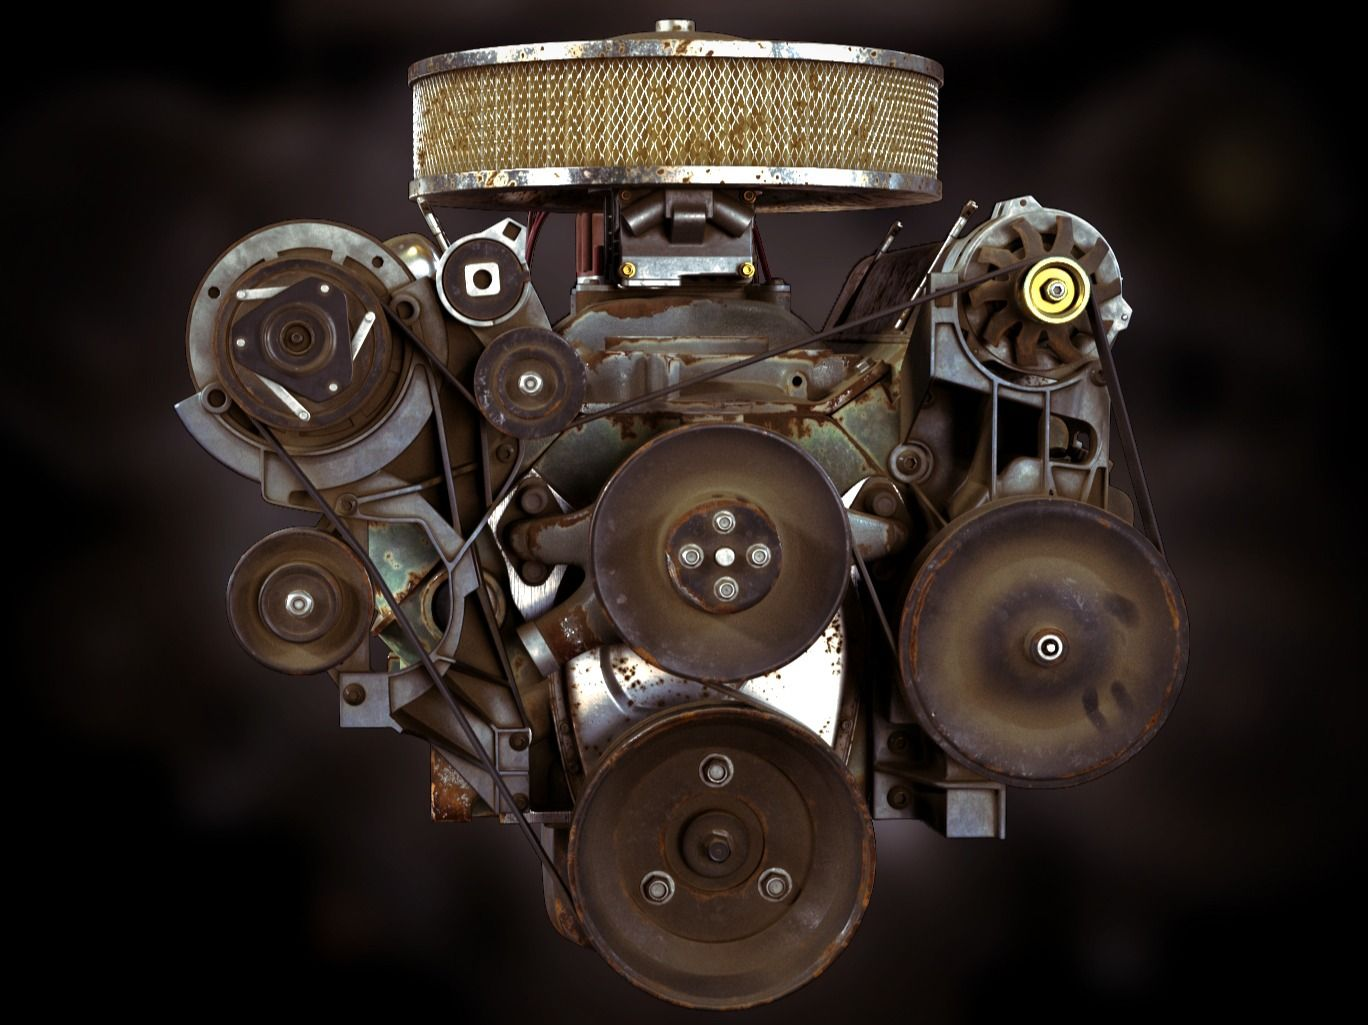 Chevrolet 350 Small Block Engine